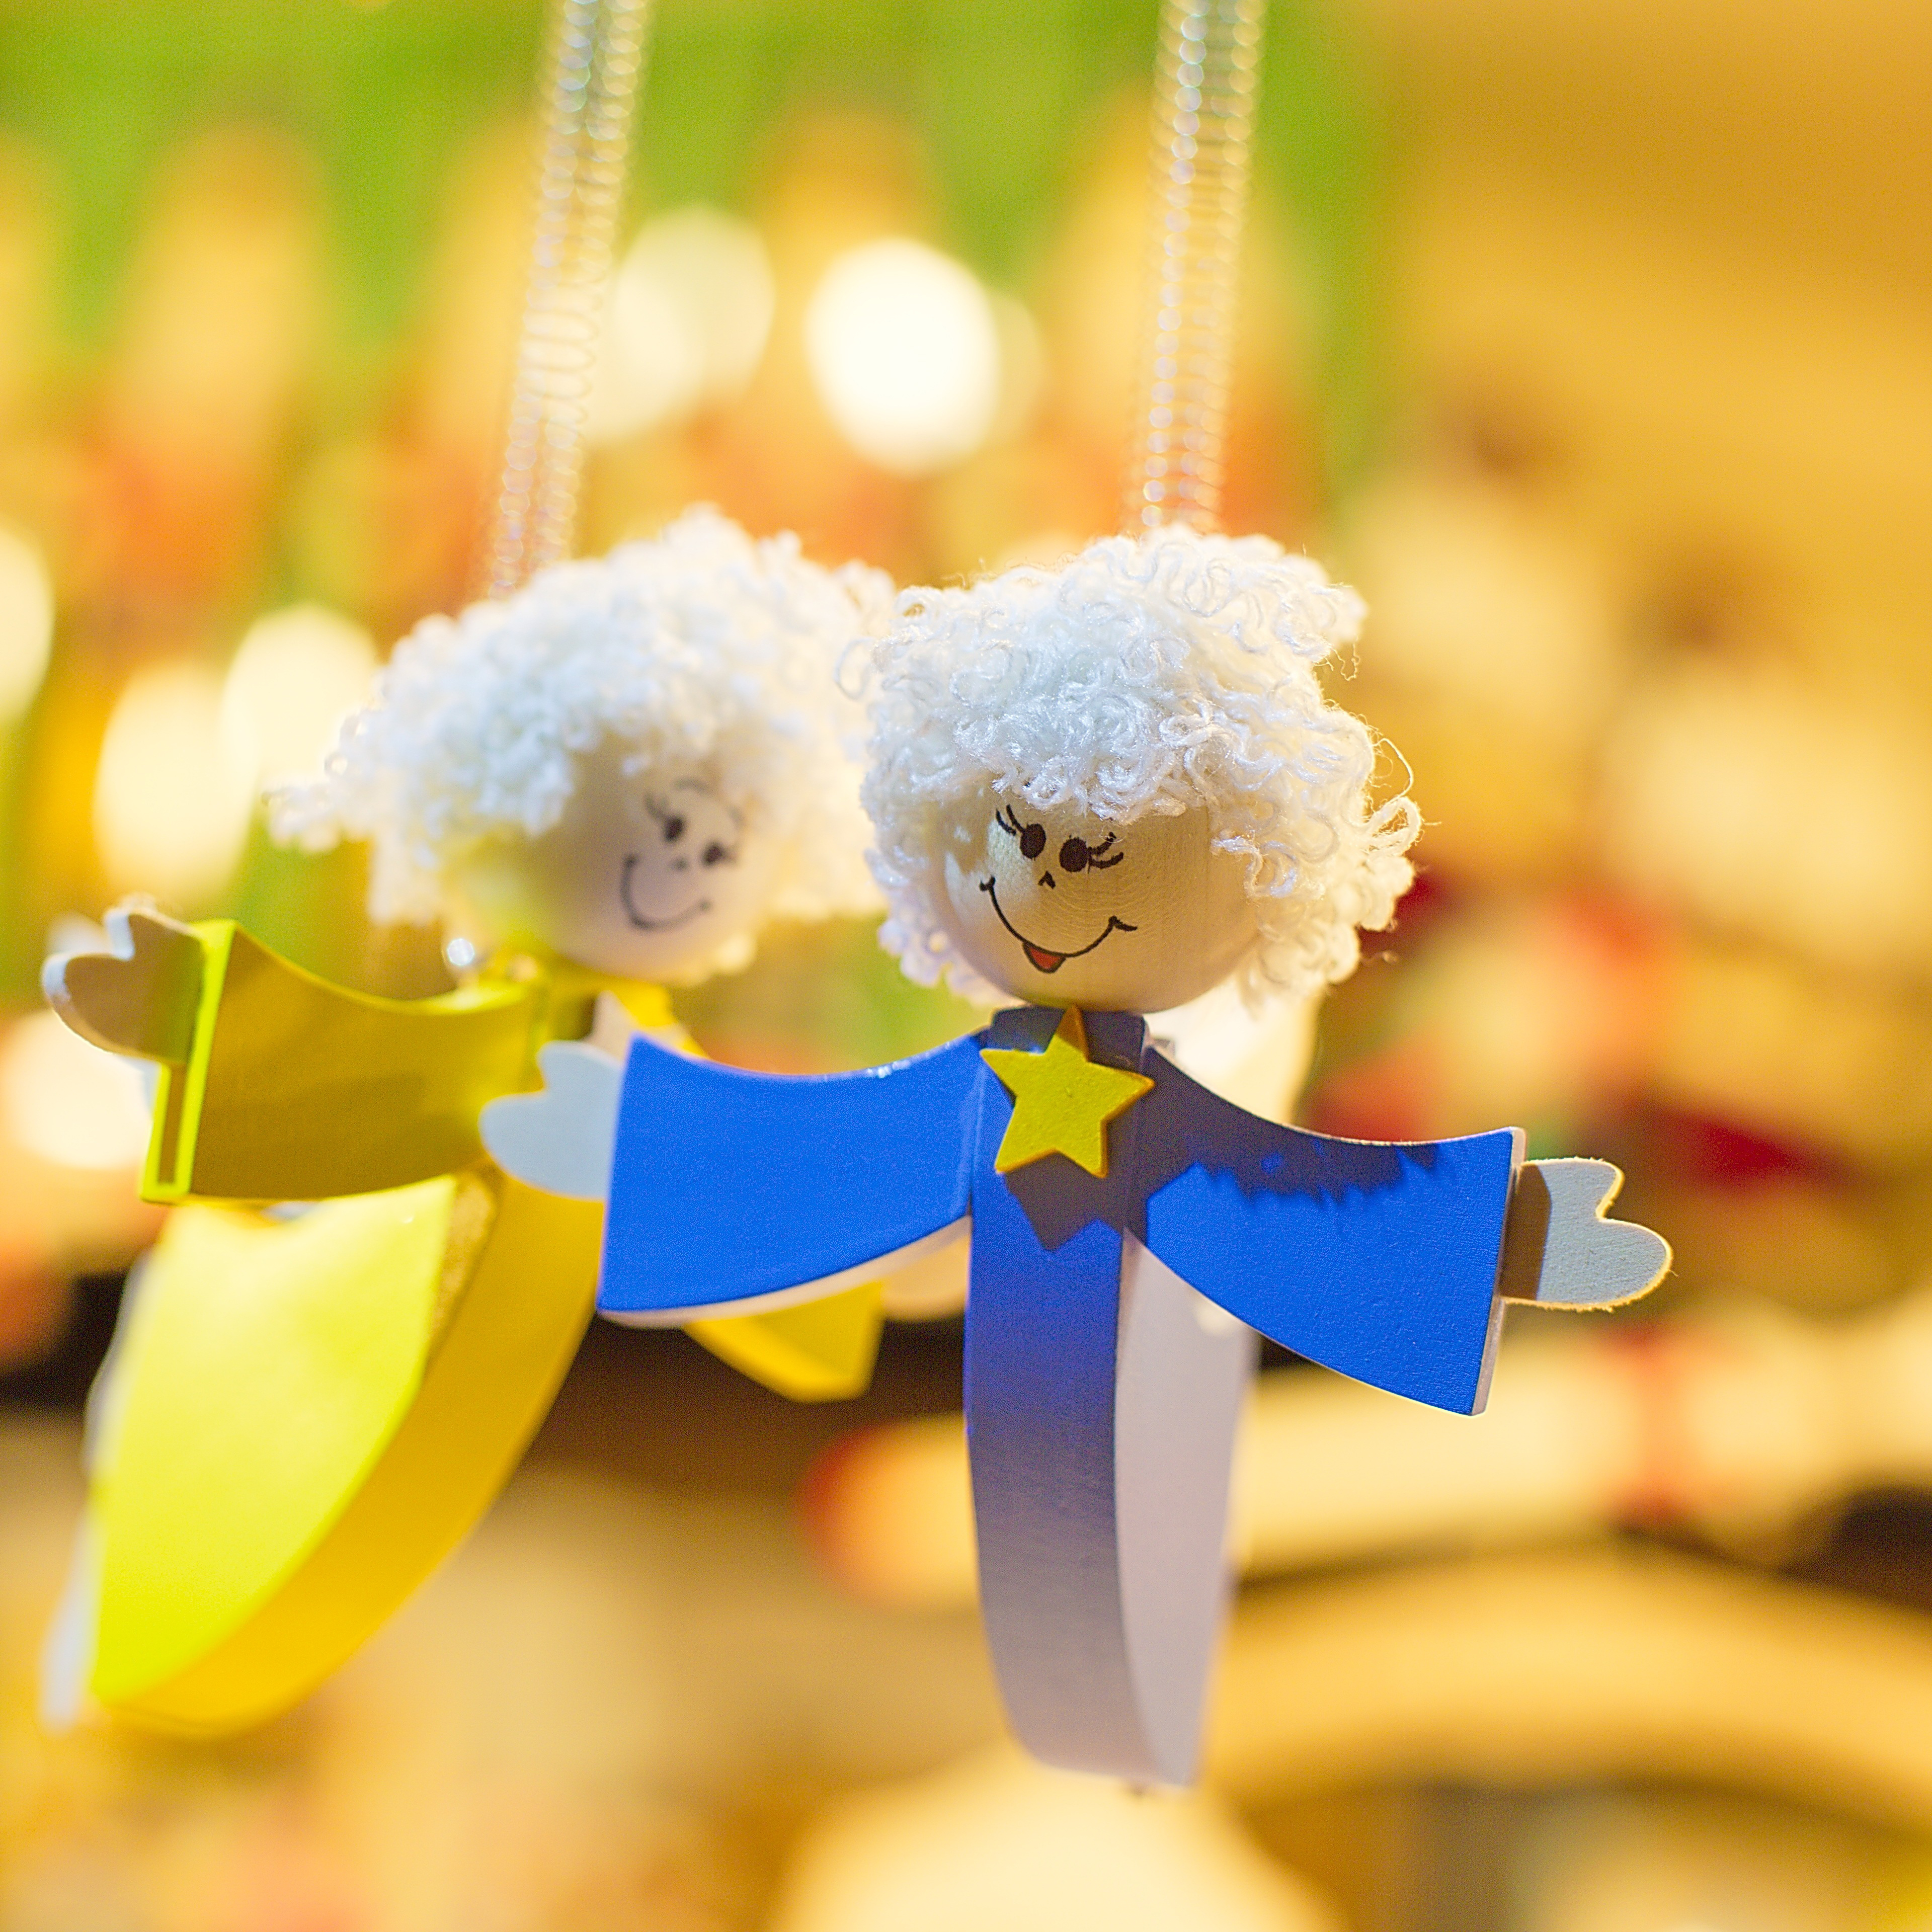 Wooden toys, hang, colorful, christmas